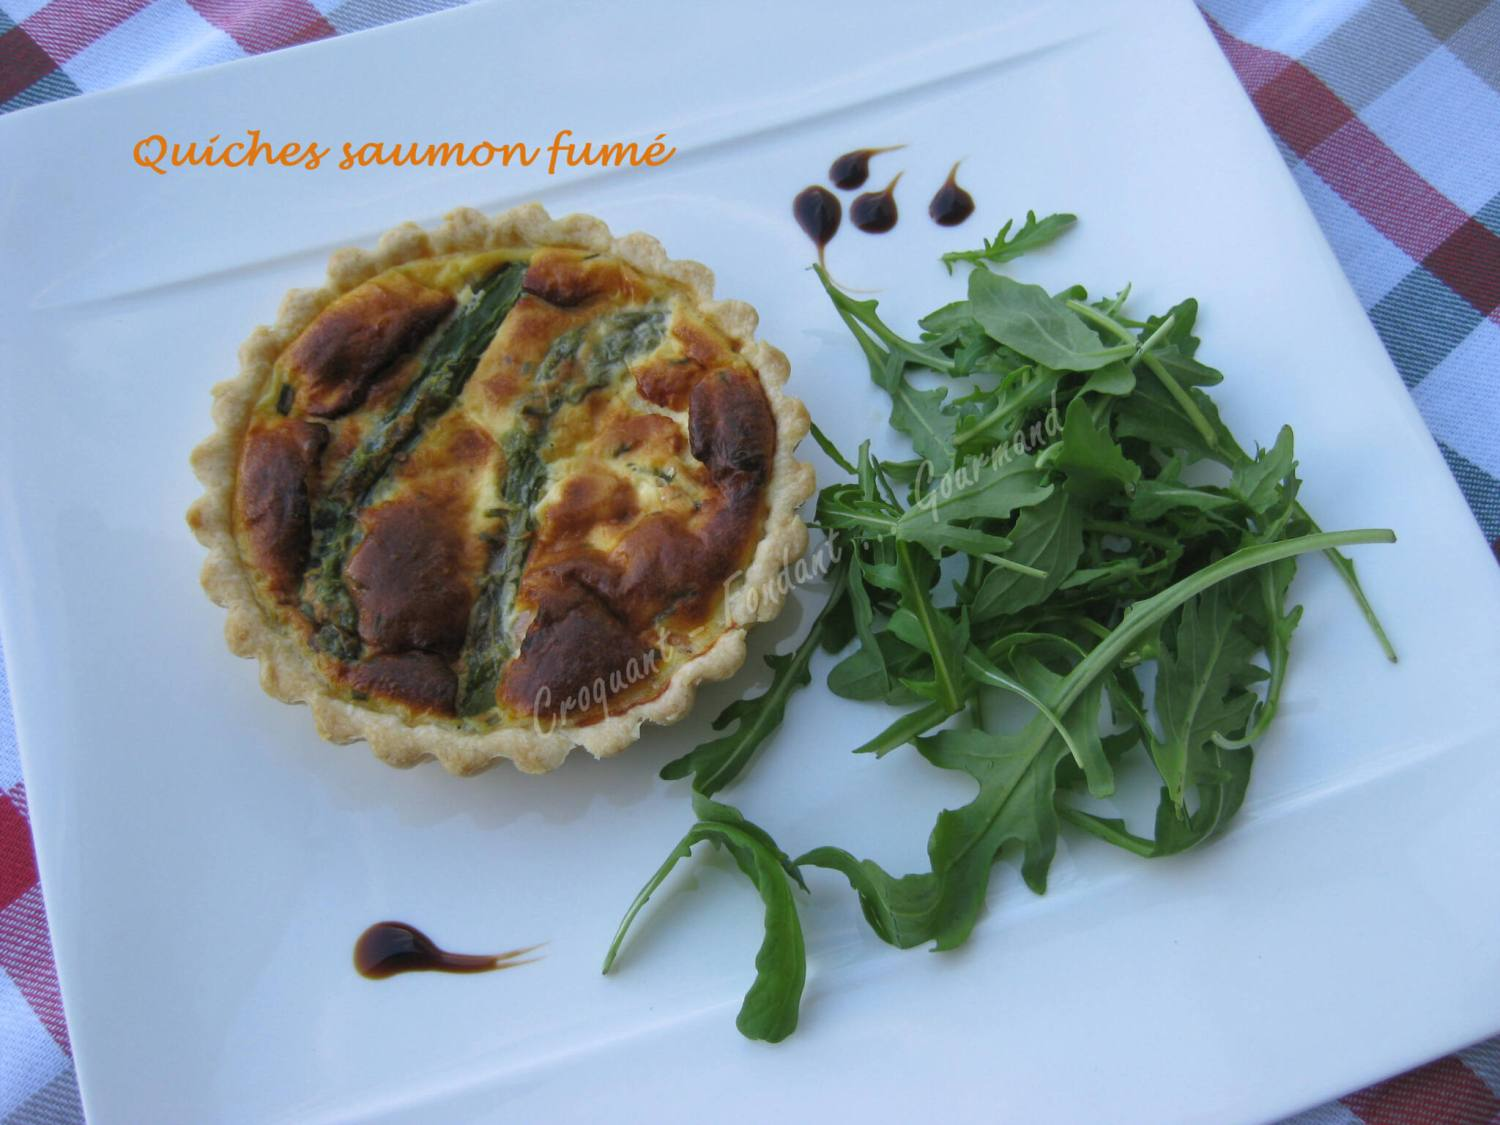 Quiches saumon fumé IMG_6293_36570